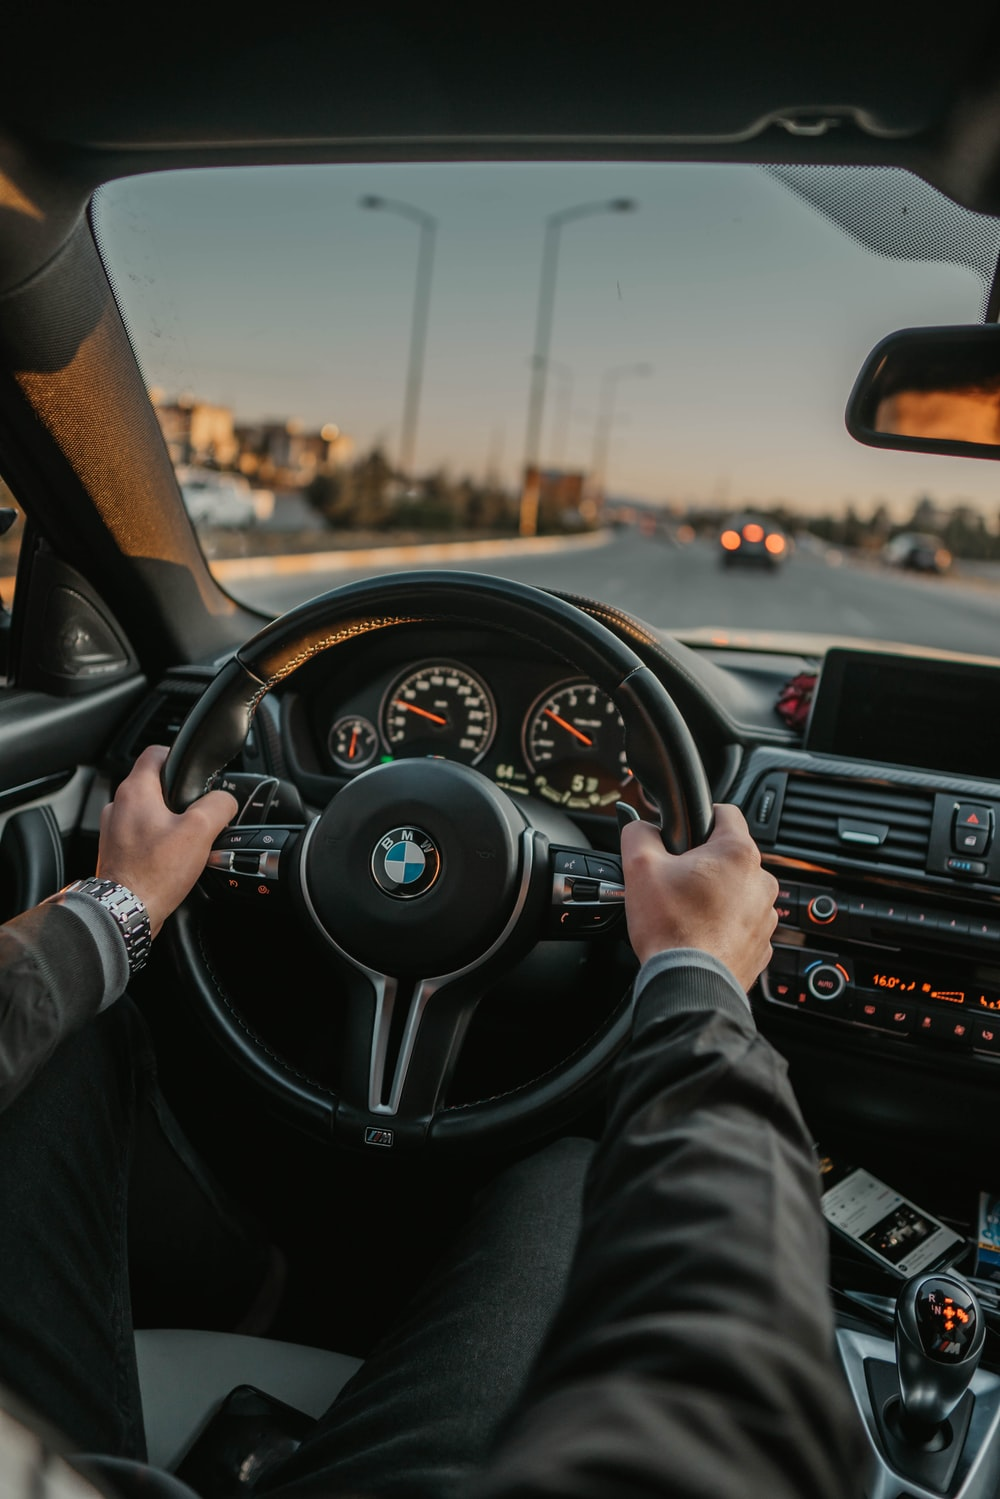 unknown person driving BMW car